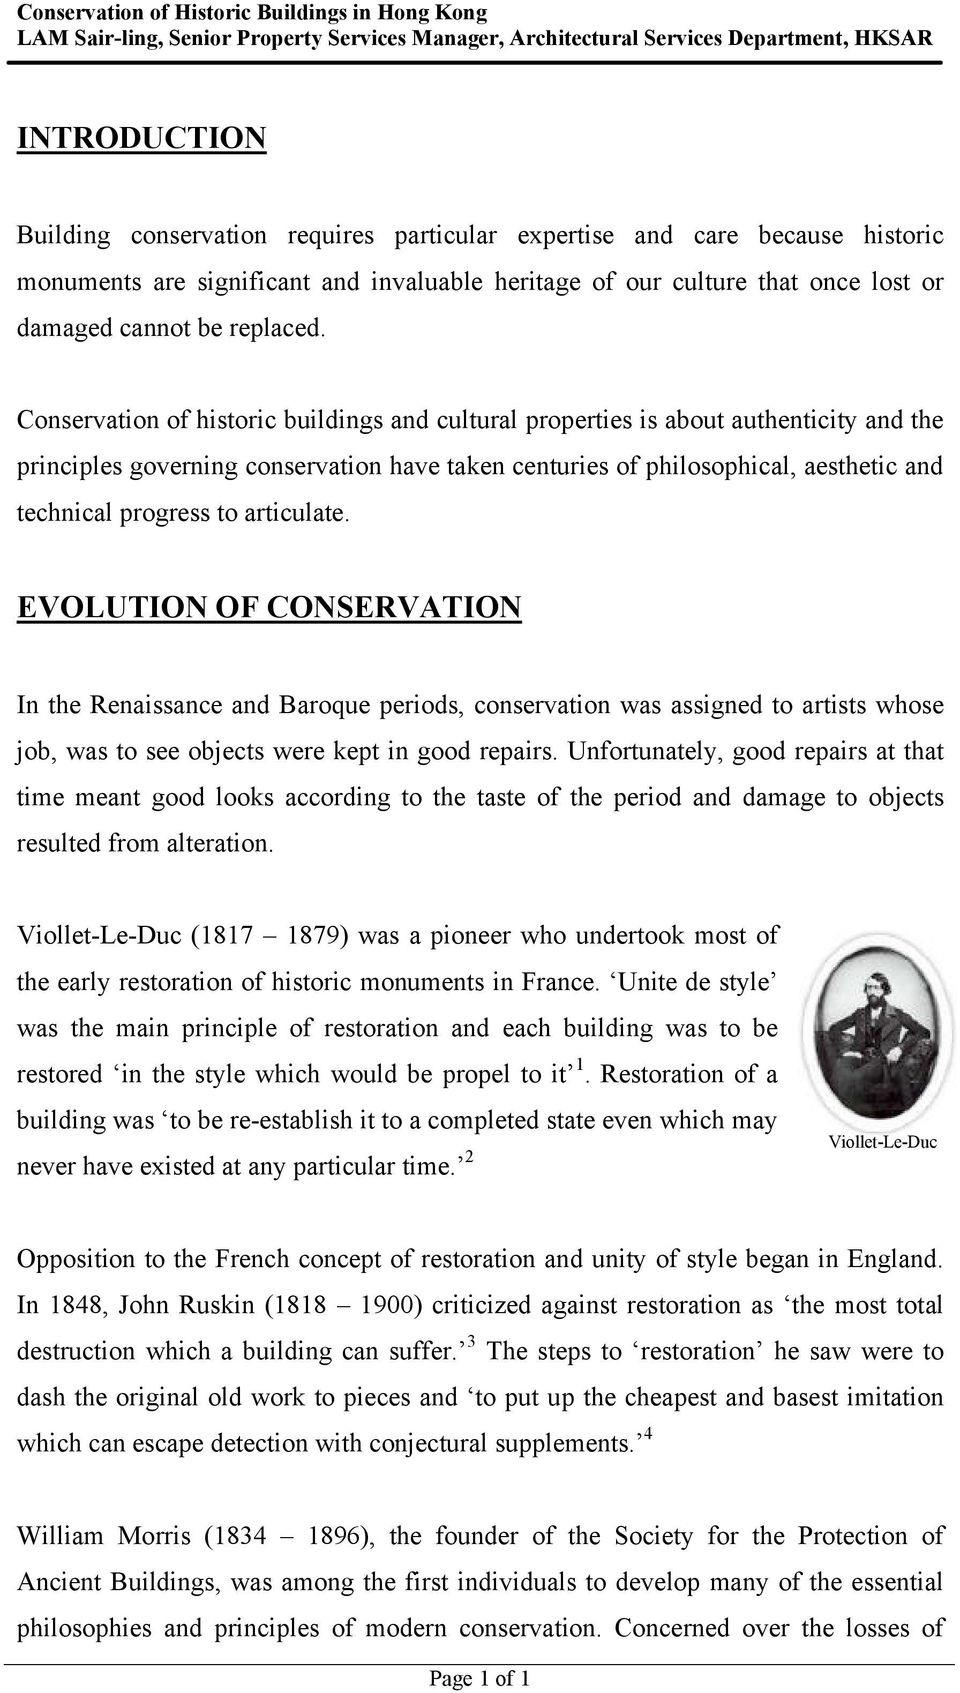 Conservation of historic buildings and cultural properties is about authenticity and the principles governing conservation have taken centuries of philosophical, aesthetic and technical progress to